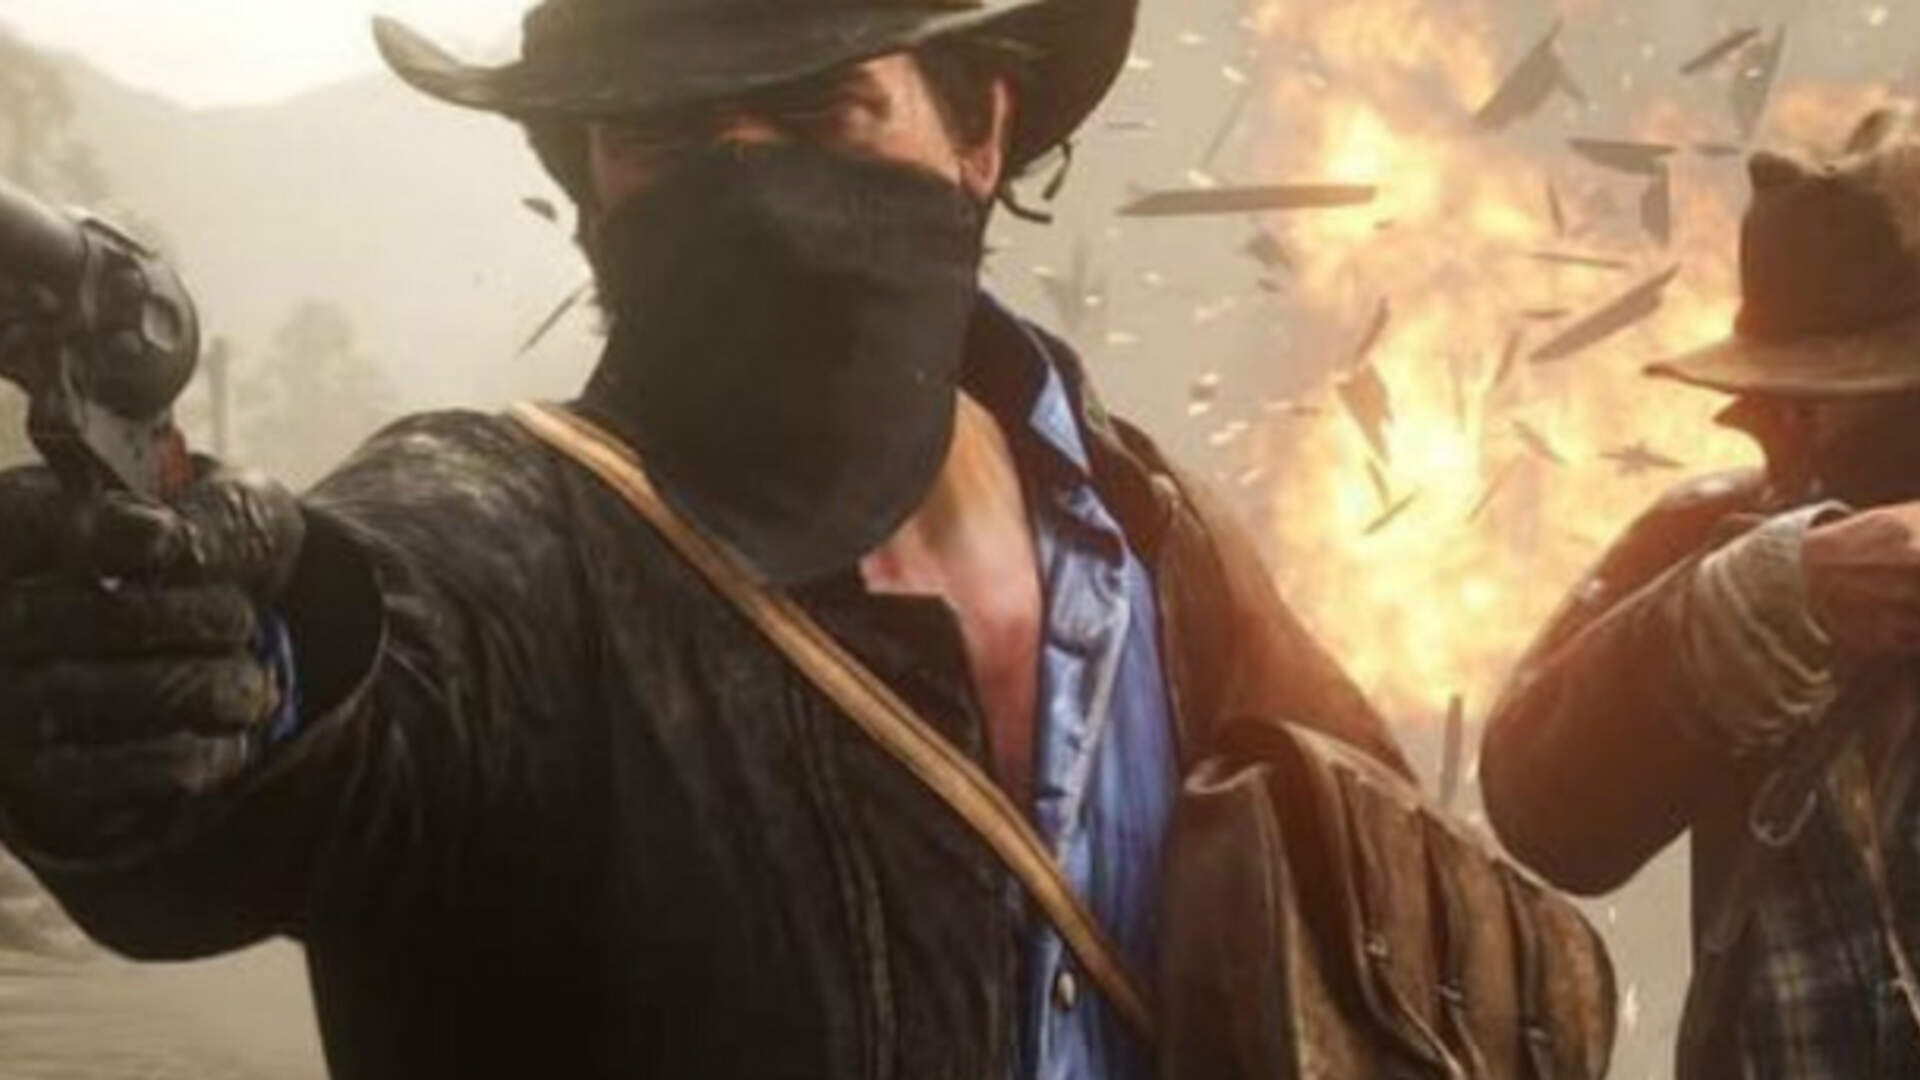 Video Game Website Apologizes for Red Dead Redemption 2 Leaks to the Tune of 1.3 Million